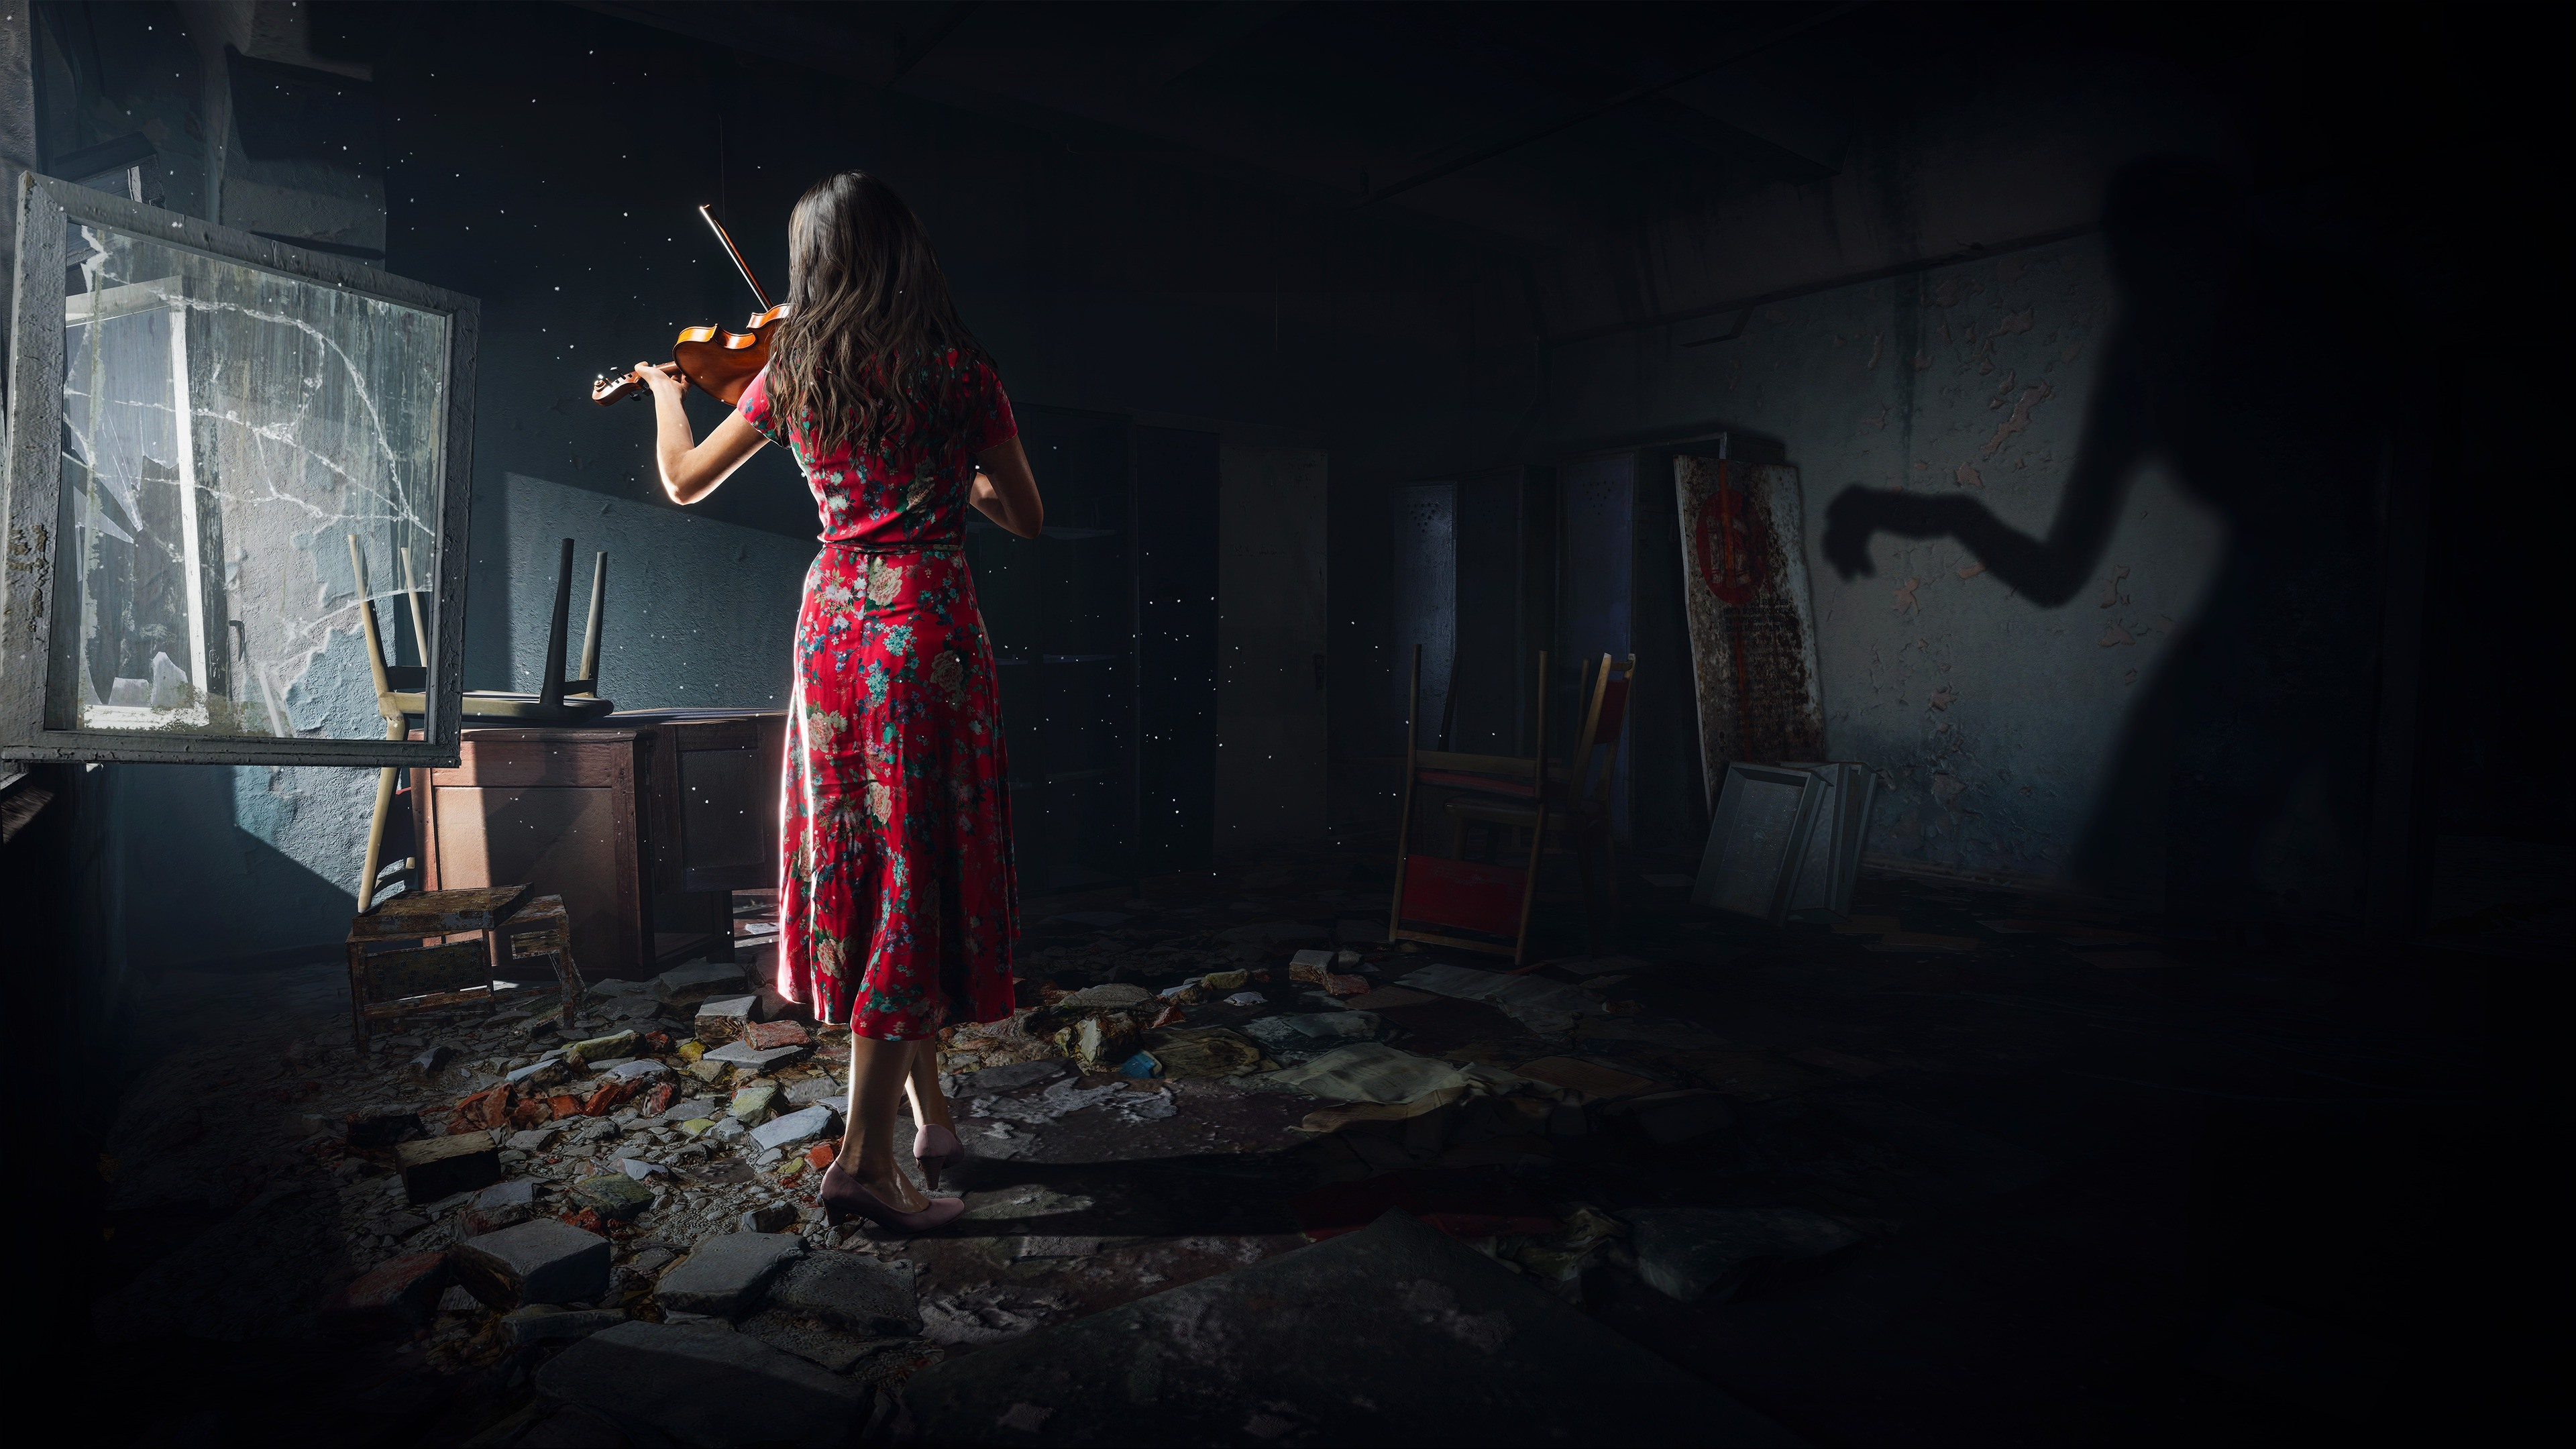 Wallpaper Chernobylite 2019 Pc Game Girl Back View Violin 3840x2160 Uhd 4k Picture Image